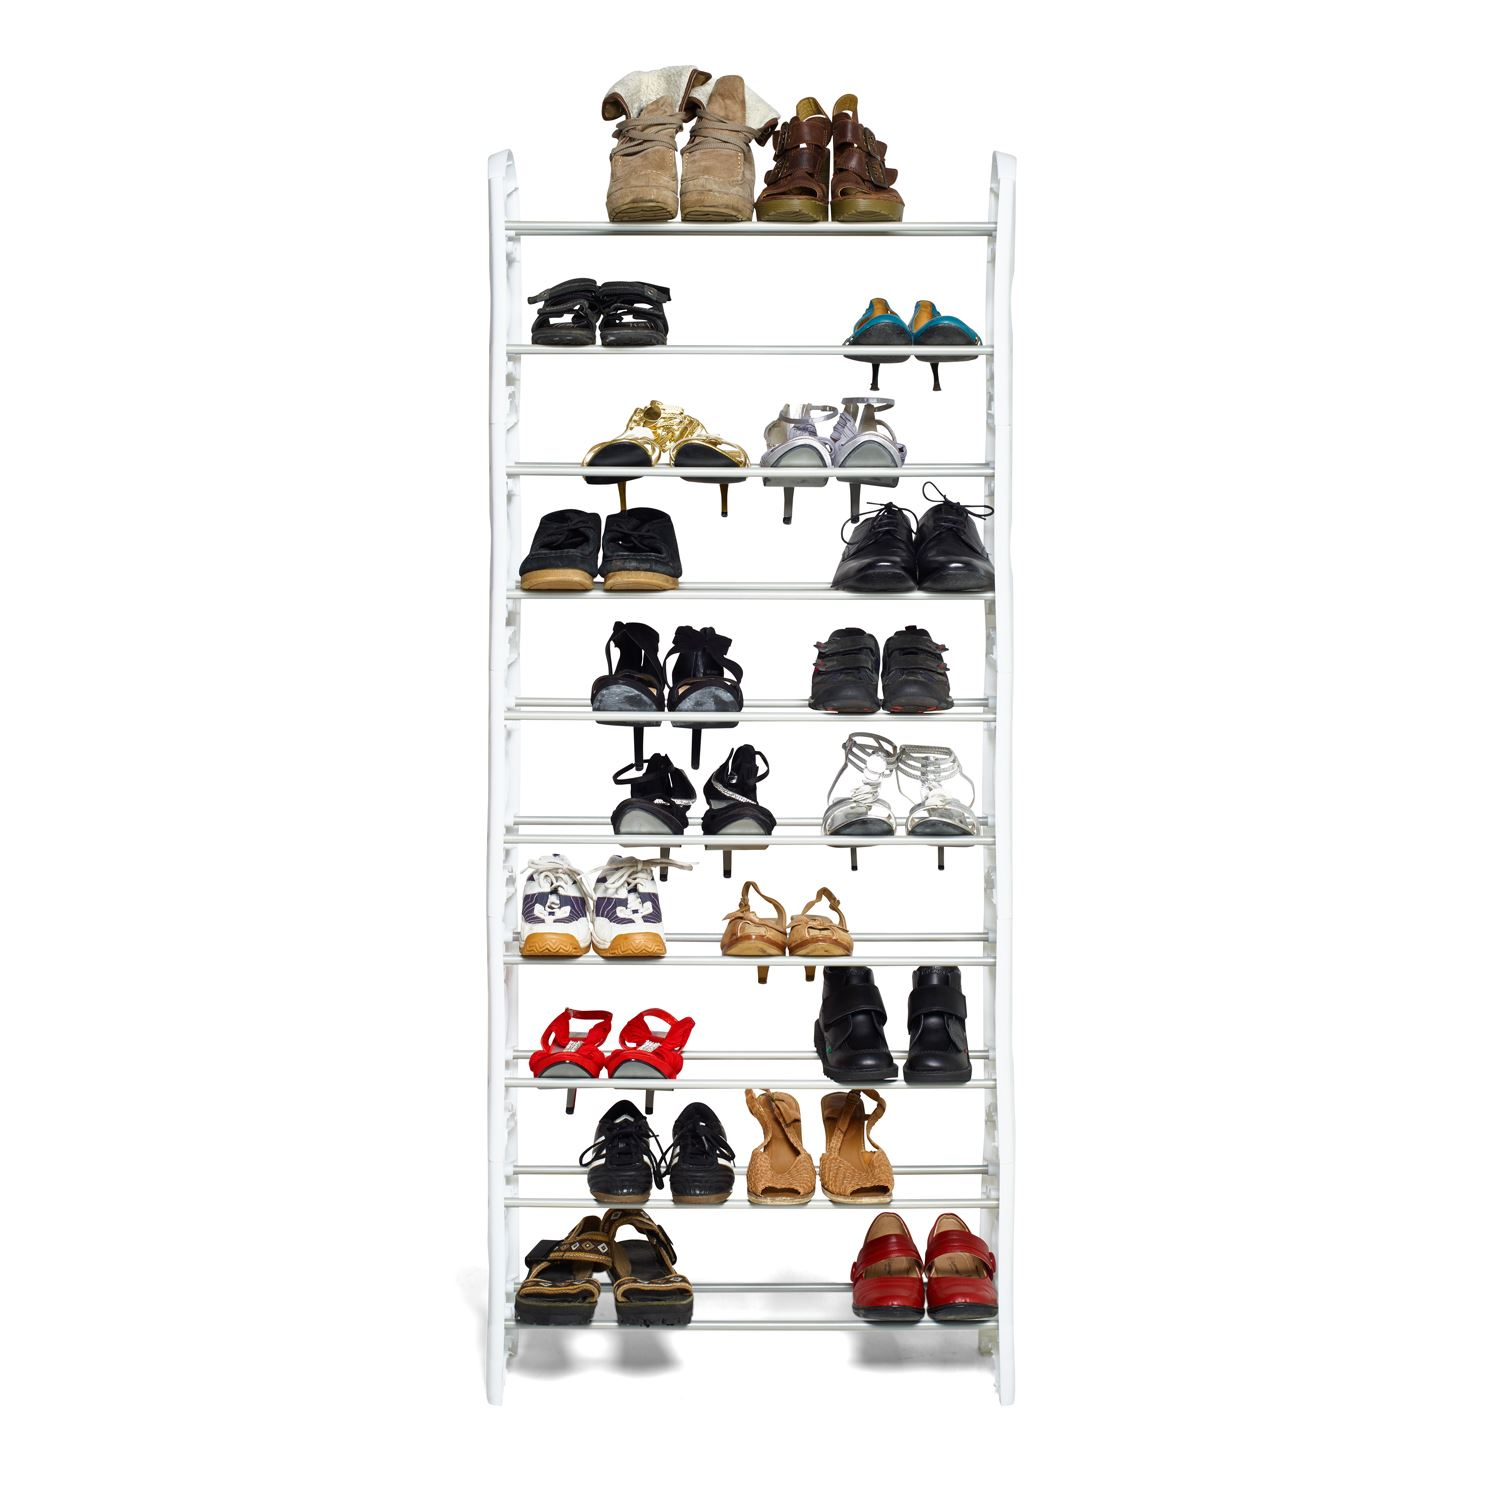 Vinsani-10-Tier-Shoes-Heels-Storage-Organiser-Stand-Shelf-Rack-Holds-Shoes